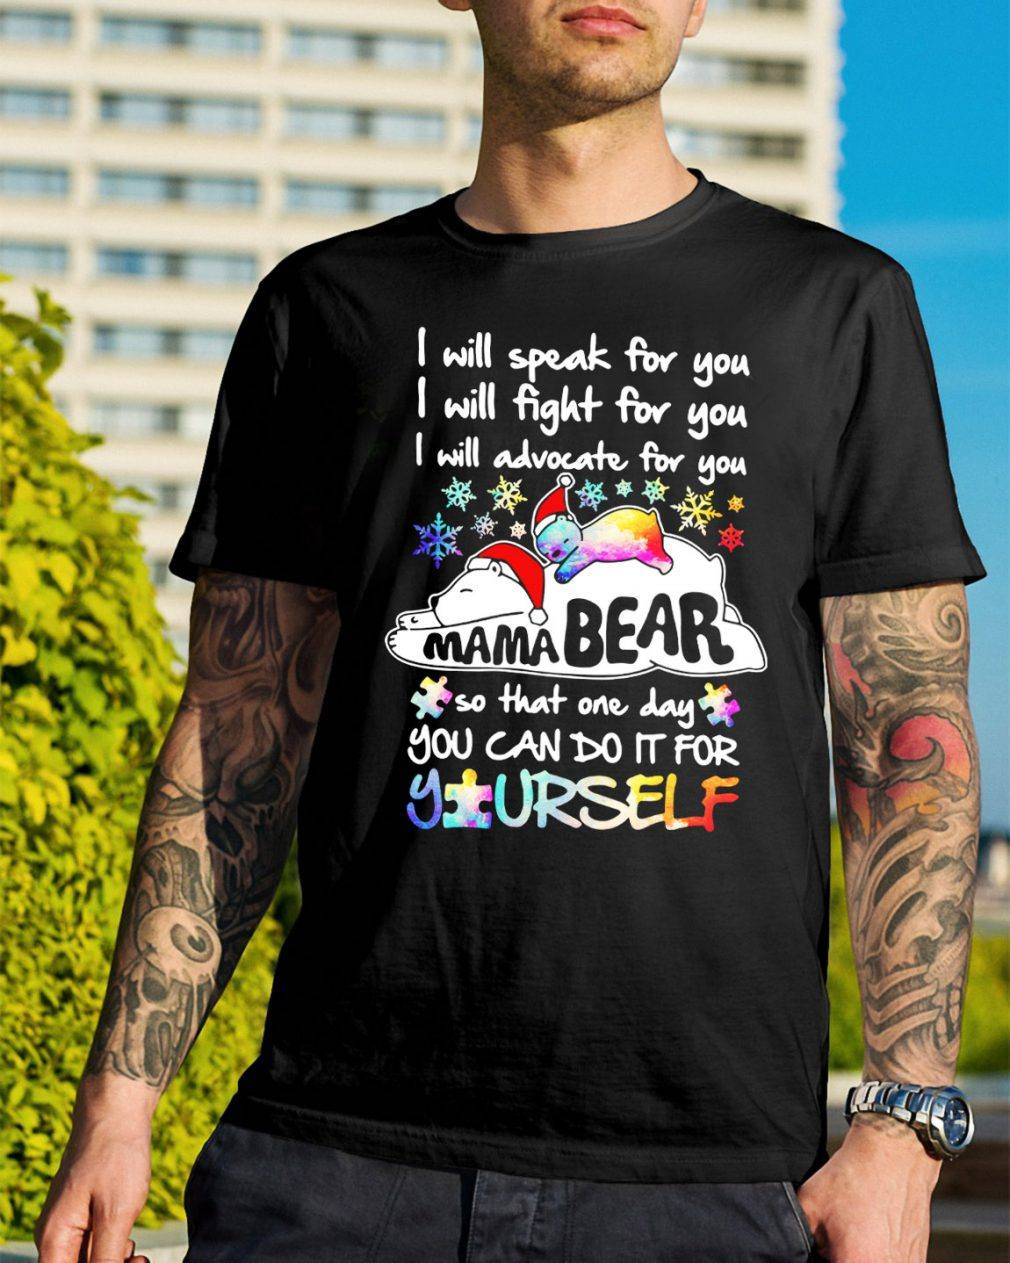 Mama bear I will speak for you so you can do it for yourself shirt